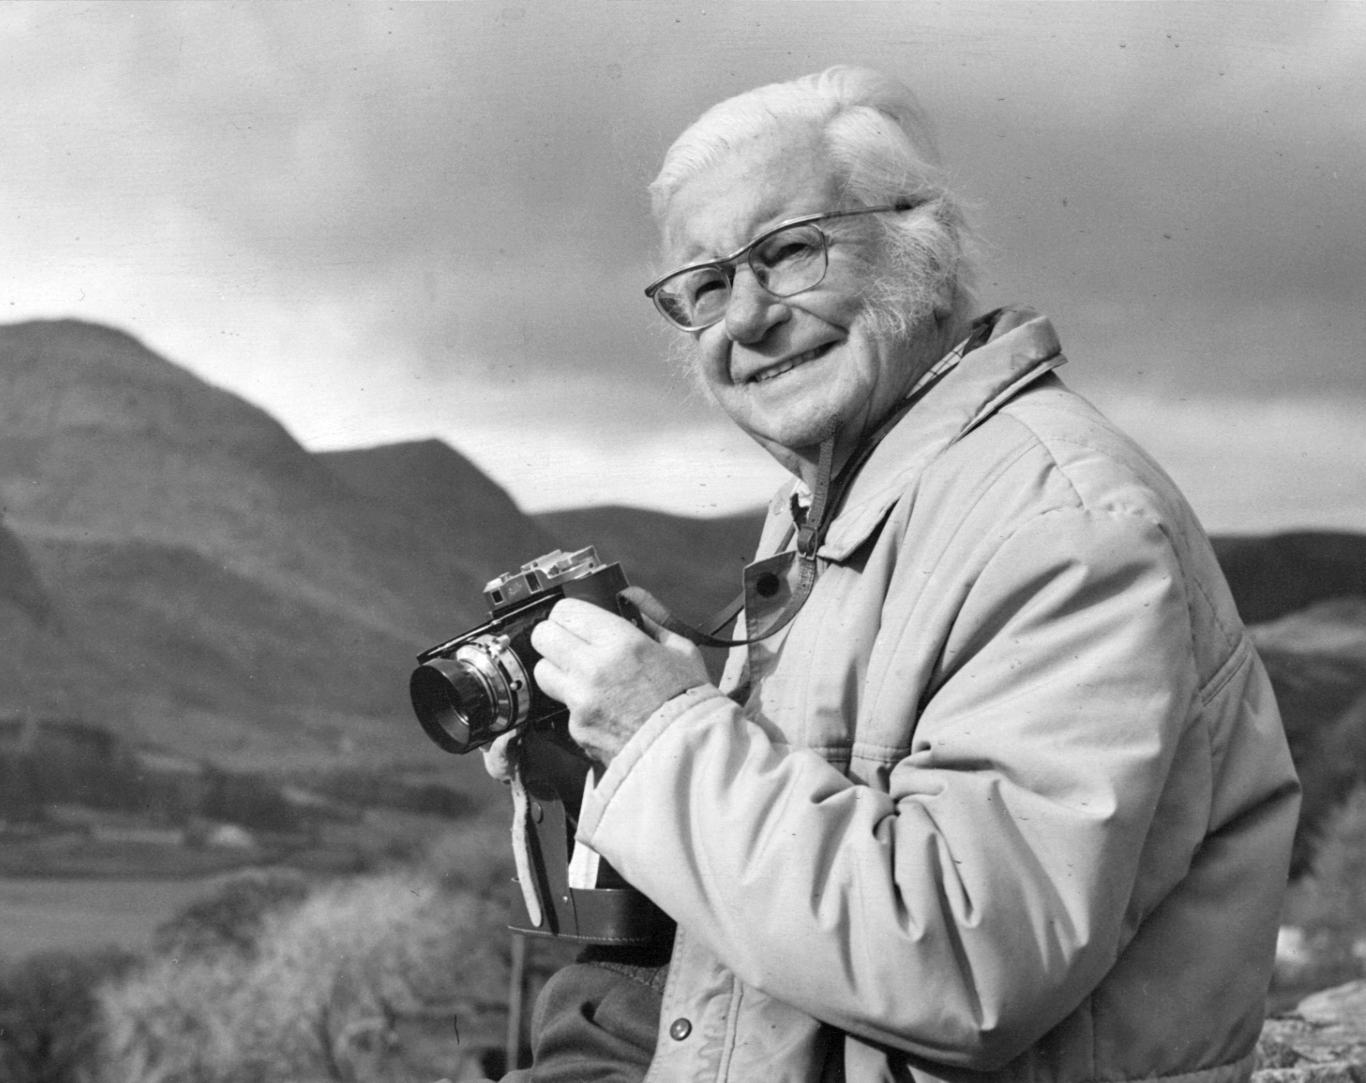 Wainwright portrait by his friend Kenneth Shepherd. (Westmorland Gazette Photographer) (53736701)